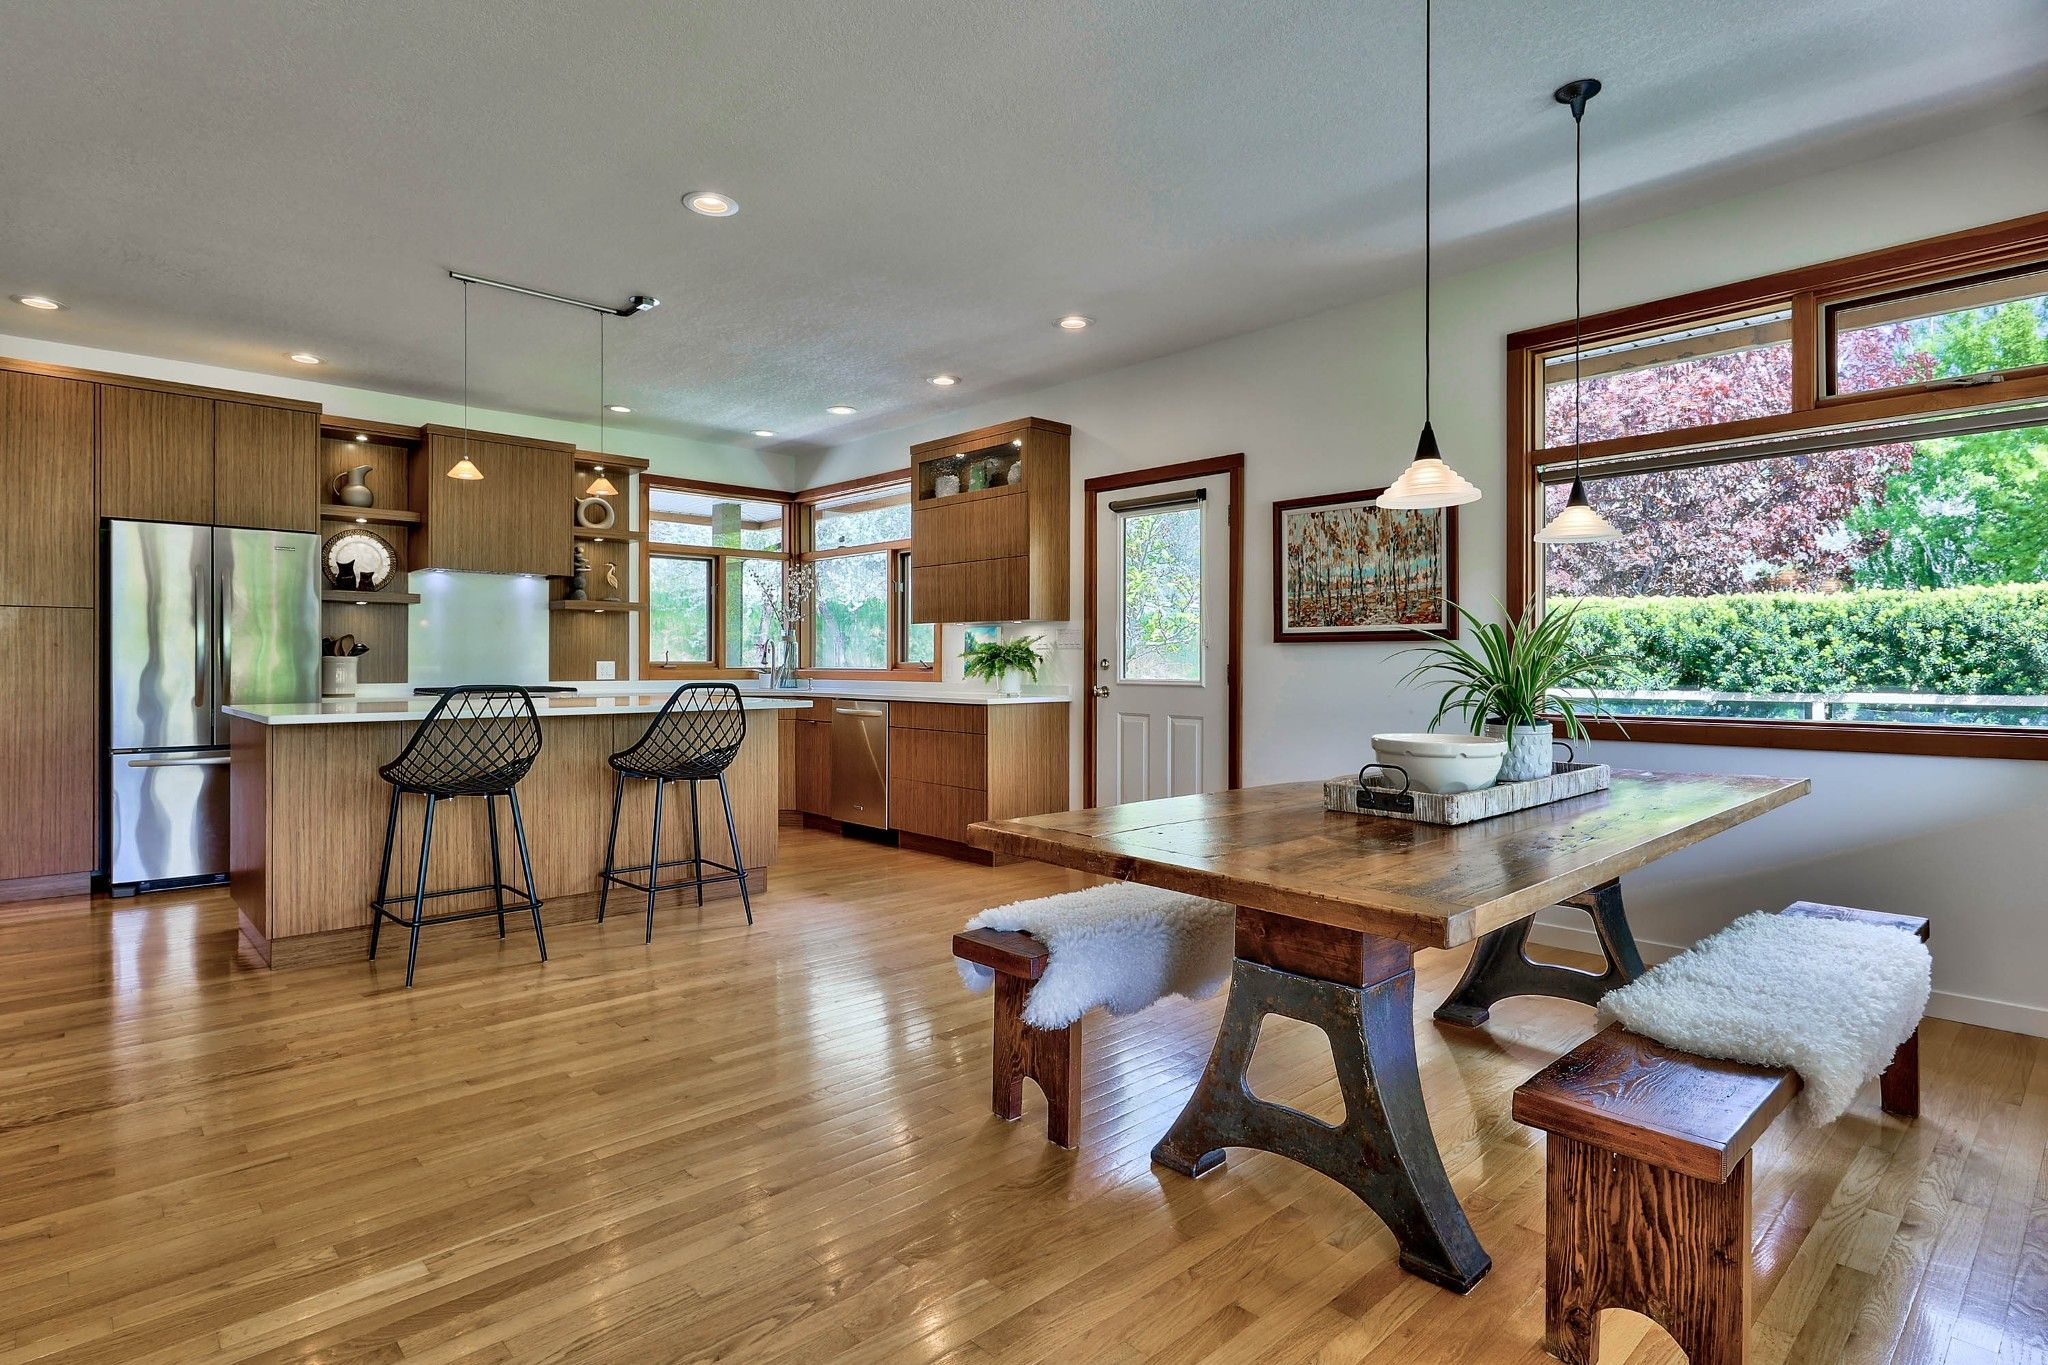 Photo 16: Photos: 3299 E Shuswap Road in Kamloops: South Thompson Valley House for sale : MLS®# 162162